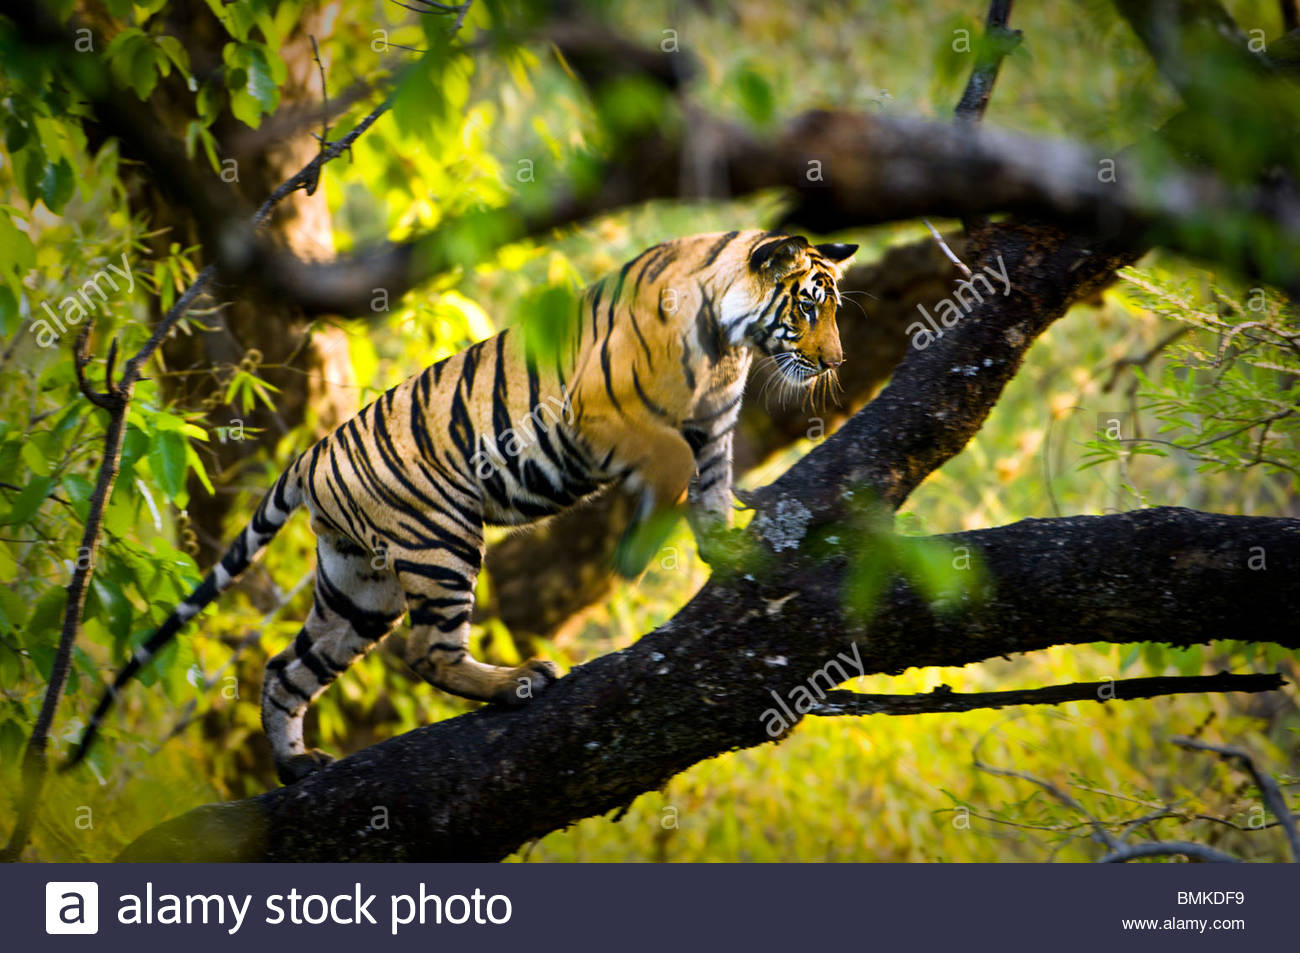 Adolescent male Bengal Tiger (around 15 months) climbing a tree. Bandhavgarh NP, Madhya Pradesh, India. - Stock Image